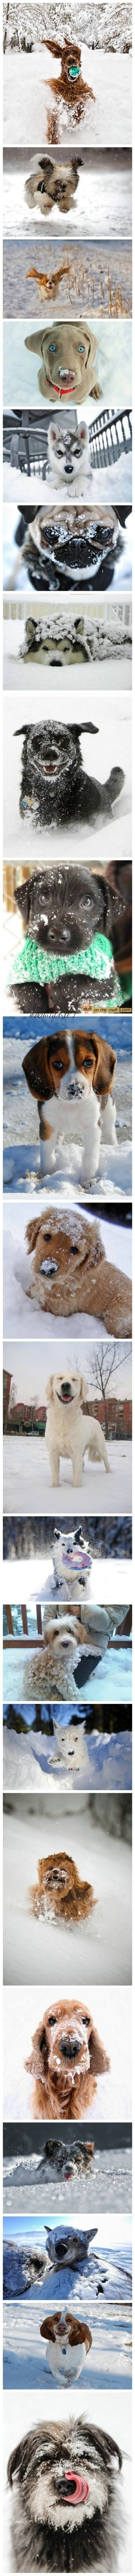 cute dogs with snow~